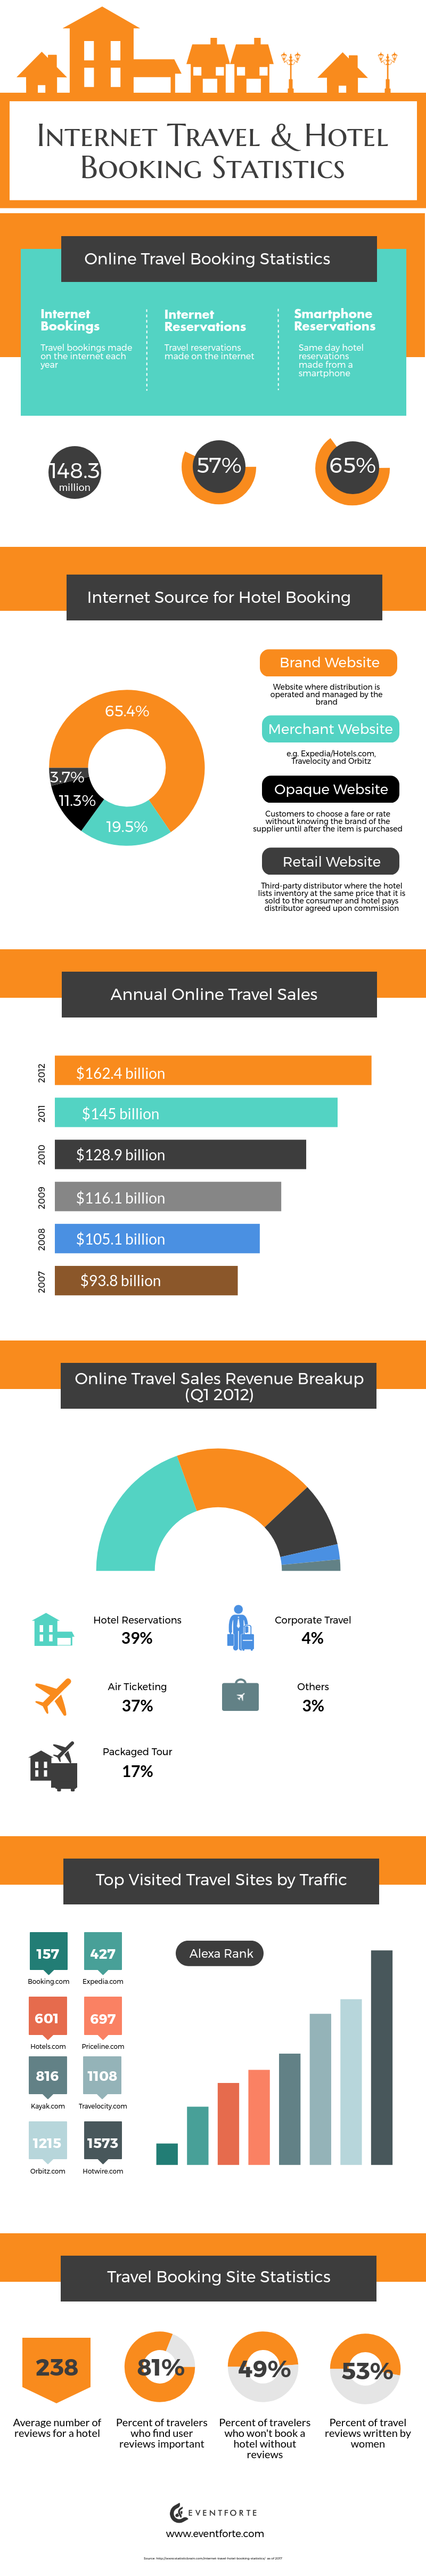 Travel & Hotel Booking Statistics